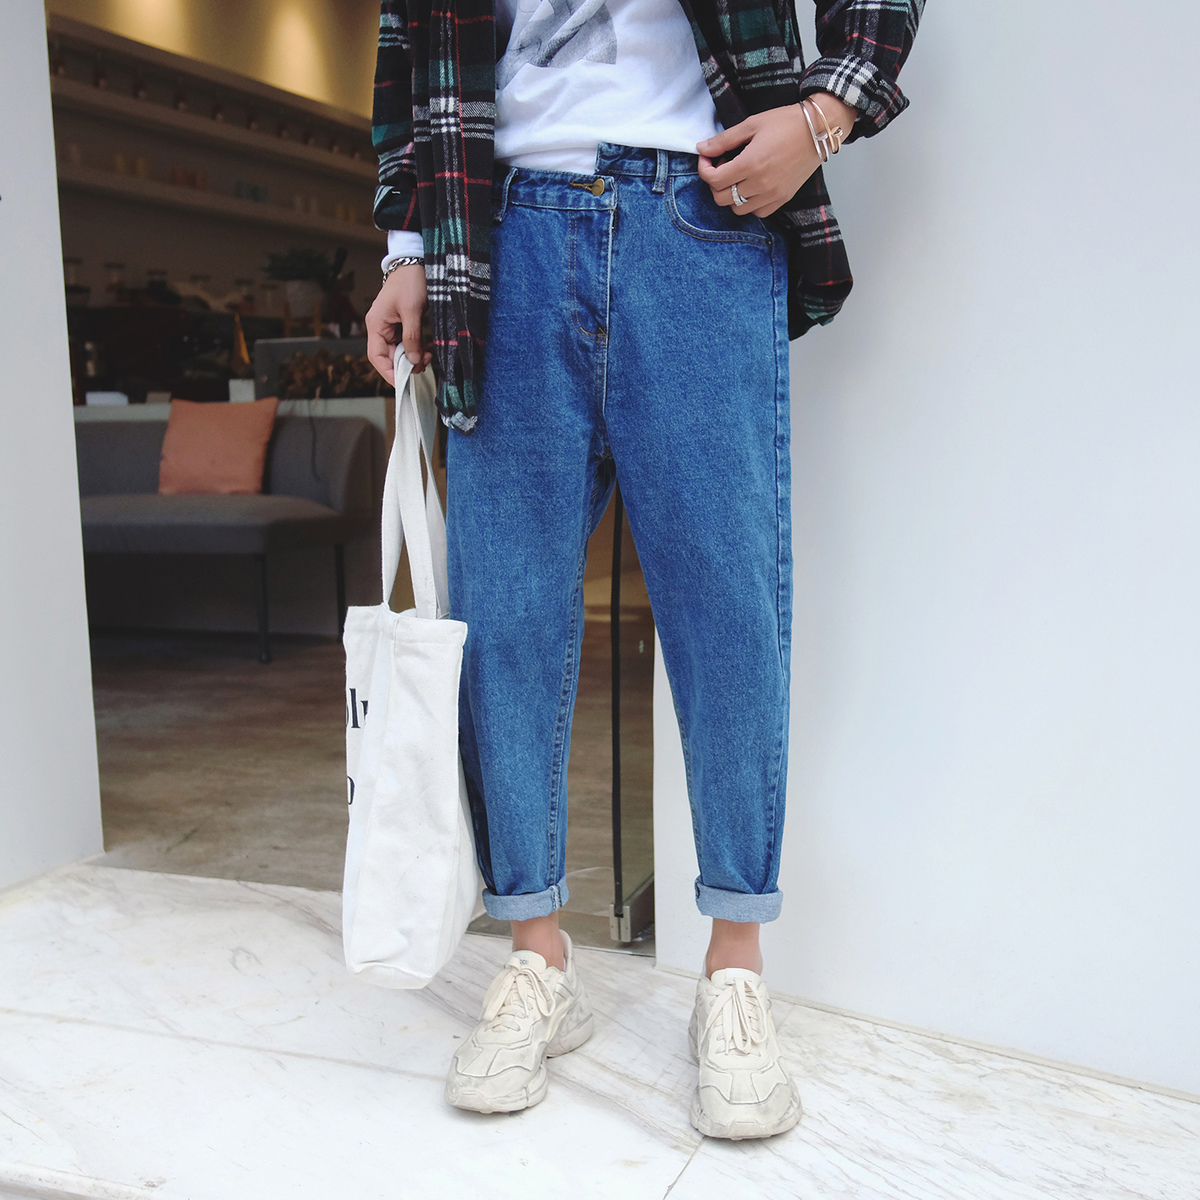 2018 New Men Fashion Casual Blue/grey Bound Feet Cowboy Haren Pants Stretch Wash Jeans Youth Homme Denim Ankle-length Trousers